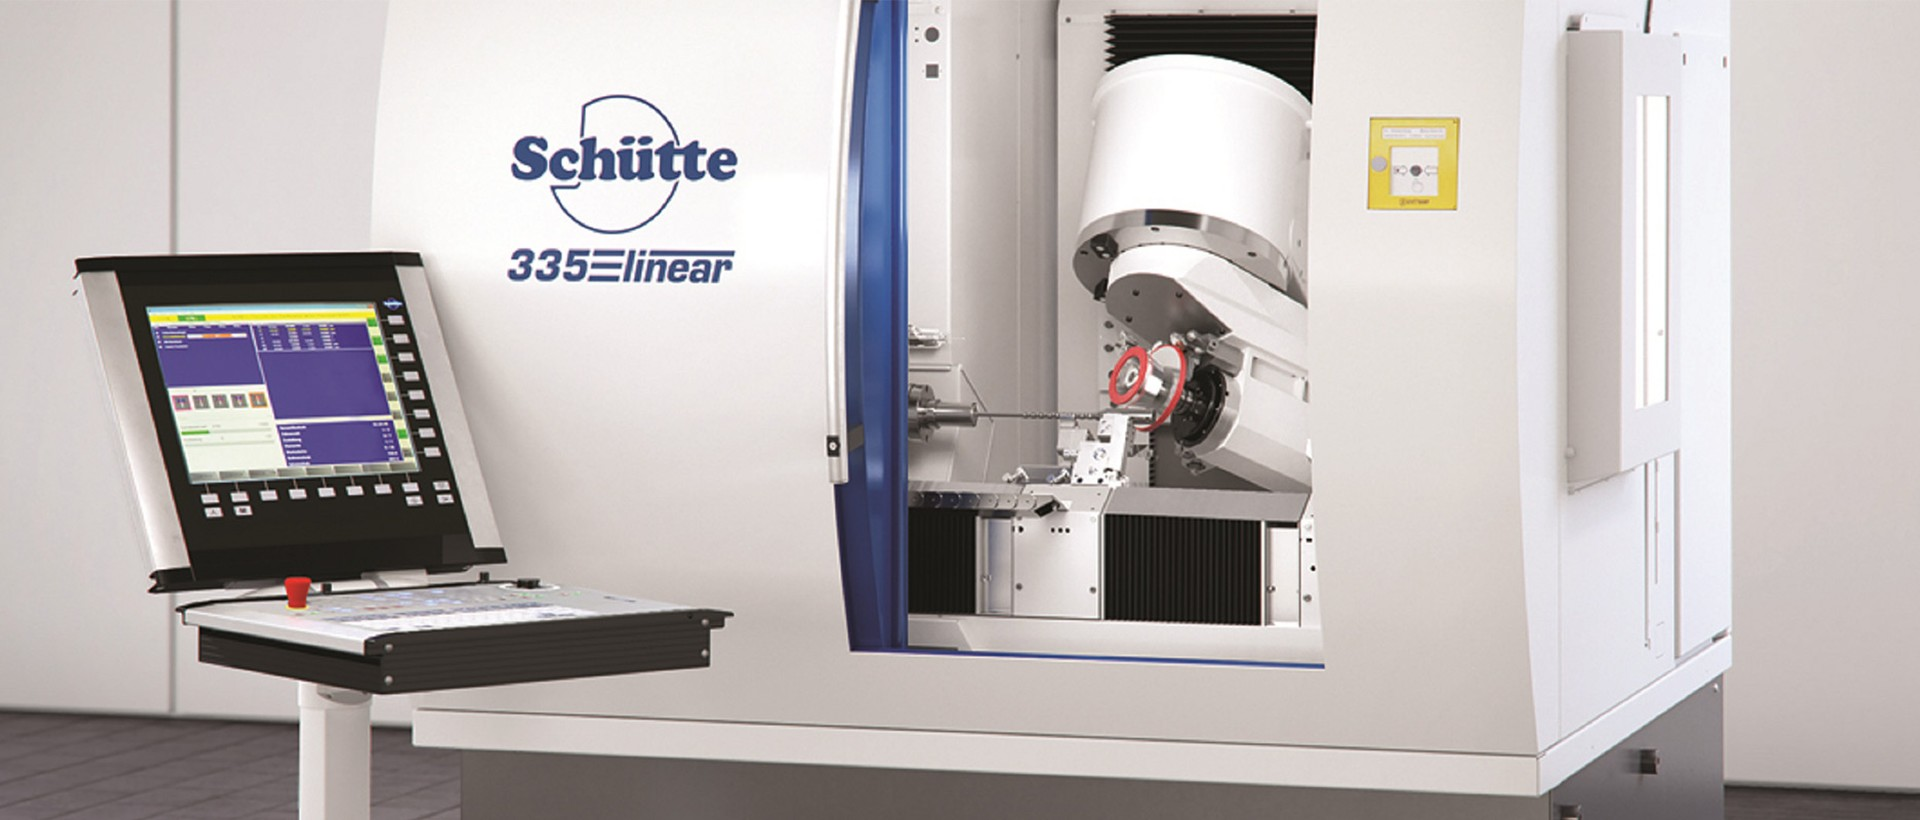 Simplify your operations and programming with Schütte Integrated Software